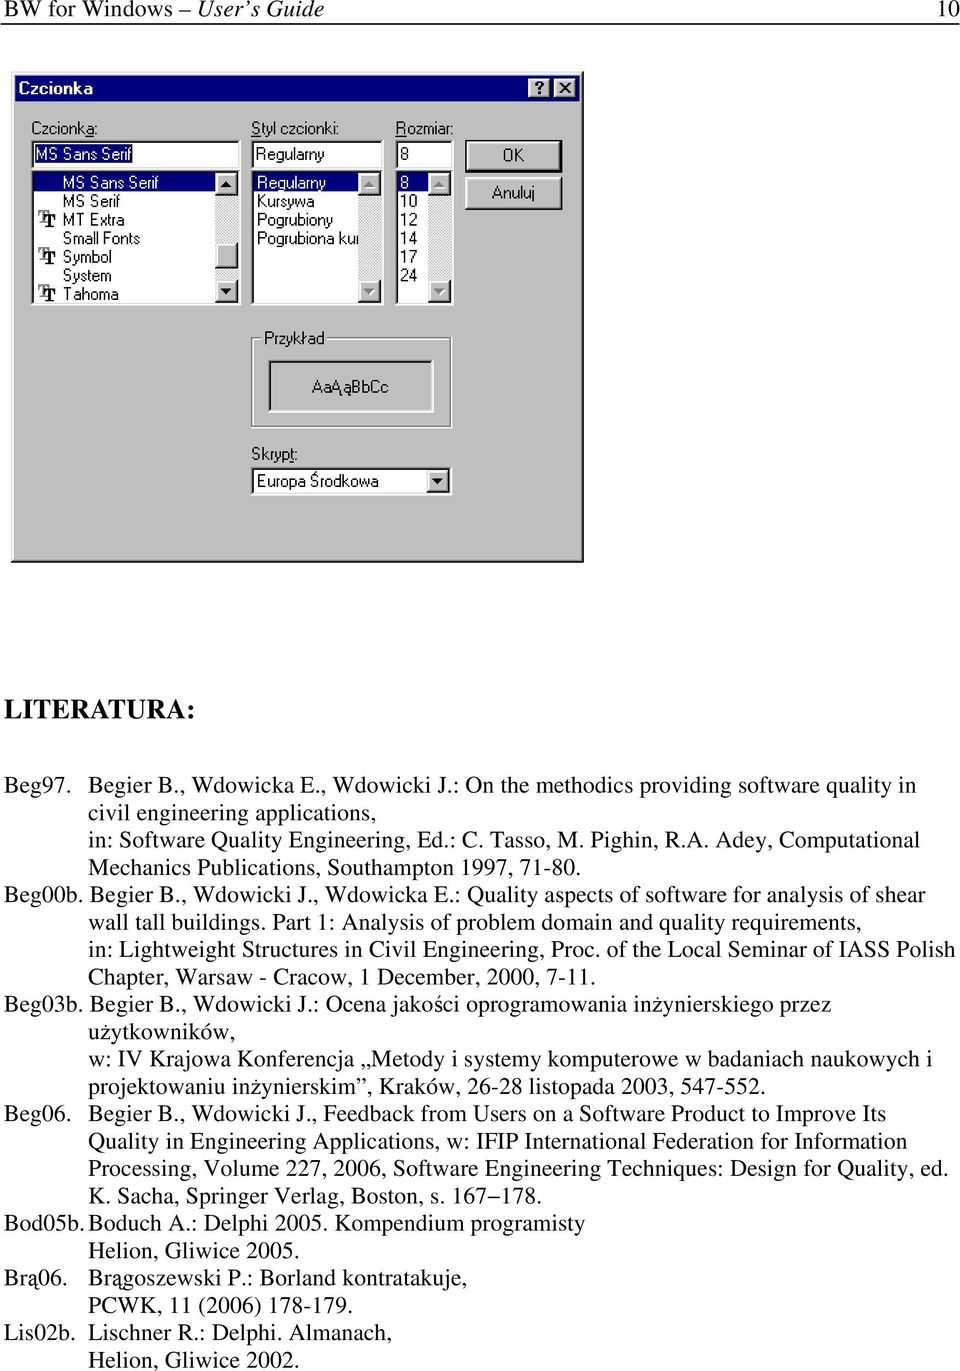 Adey, Computational Mechanics Publications, Southampton 1997, 71-80. Beg00b. Begier B., Wdowicki J., Wdowicka E.: Quality aspects of software for analysis of shear wall tall buildings.